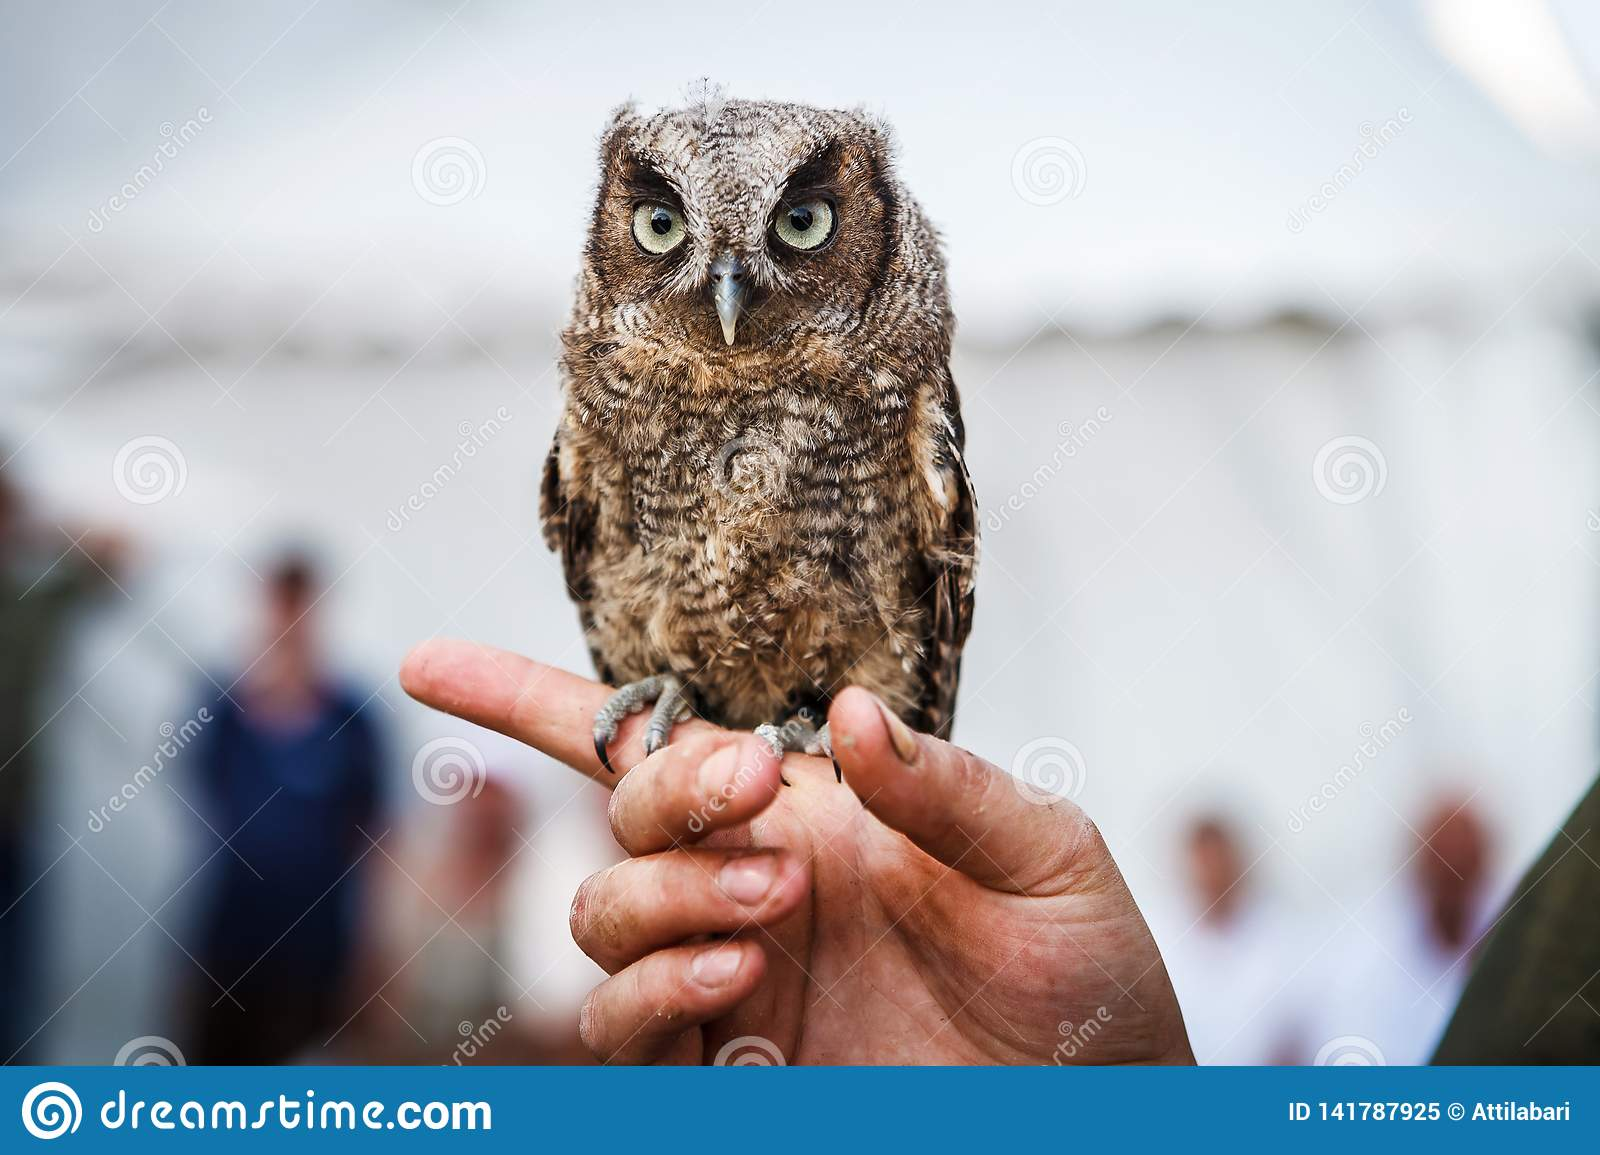 Small brown owl sitting